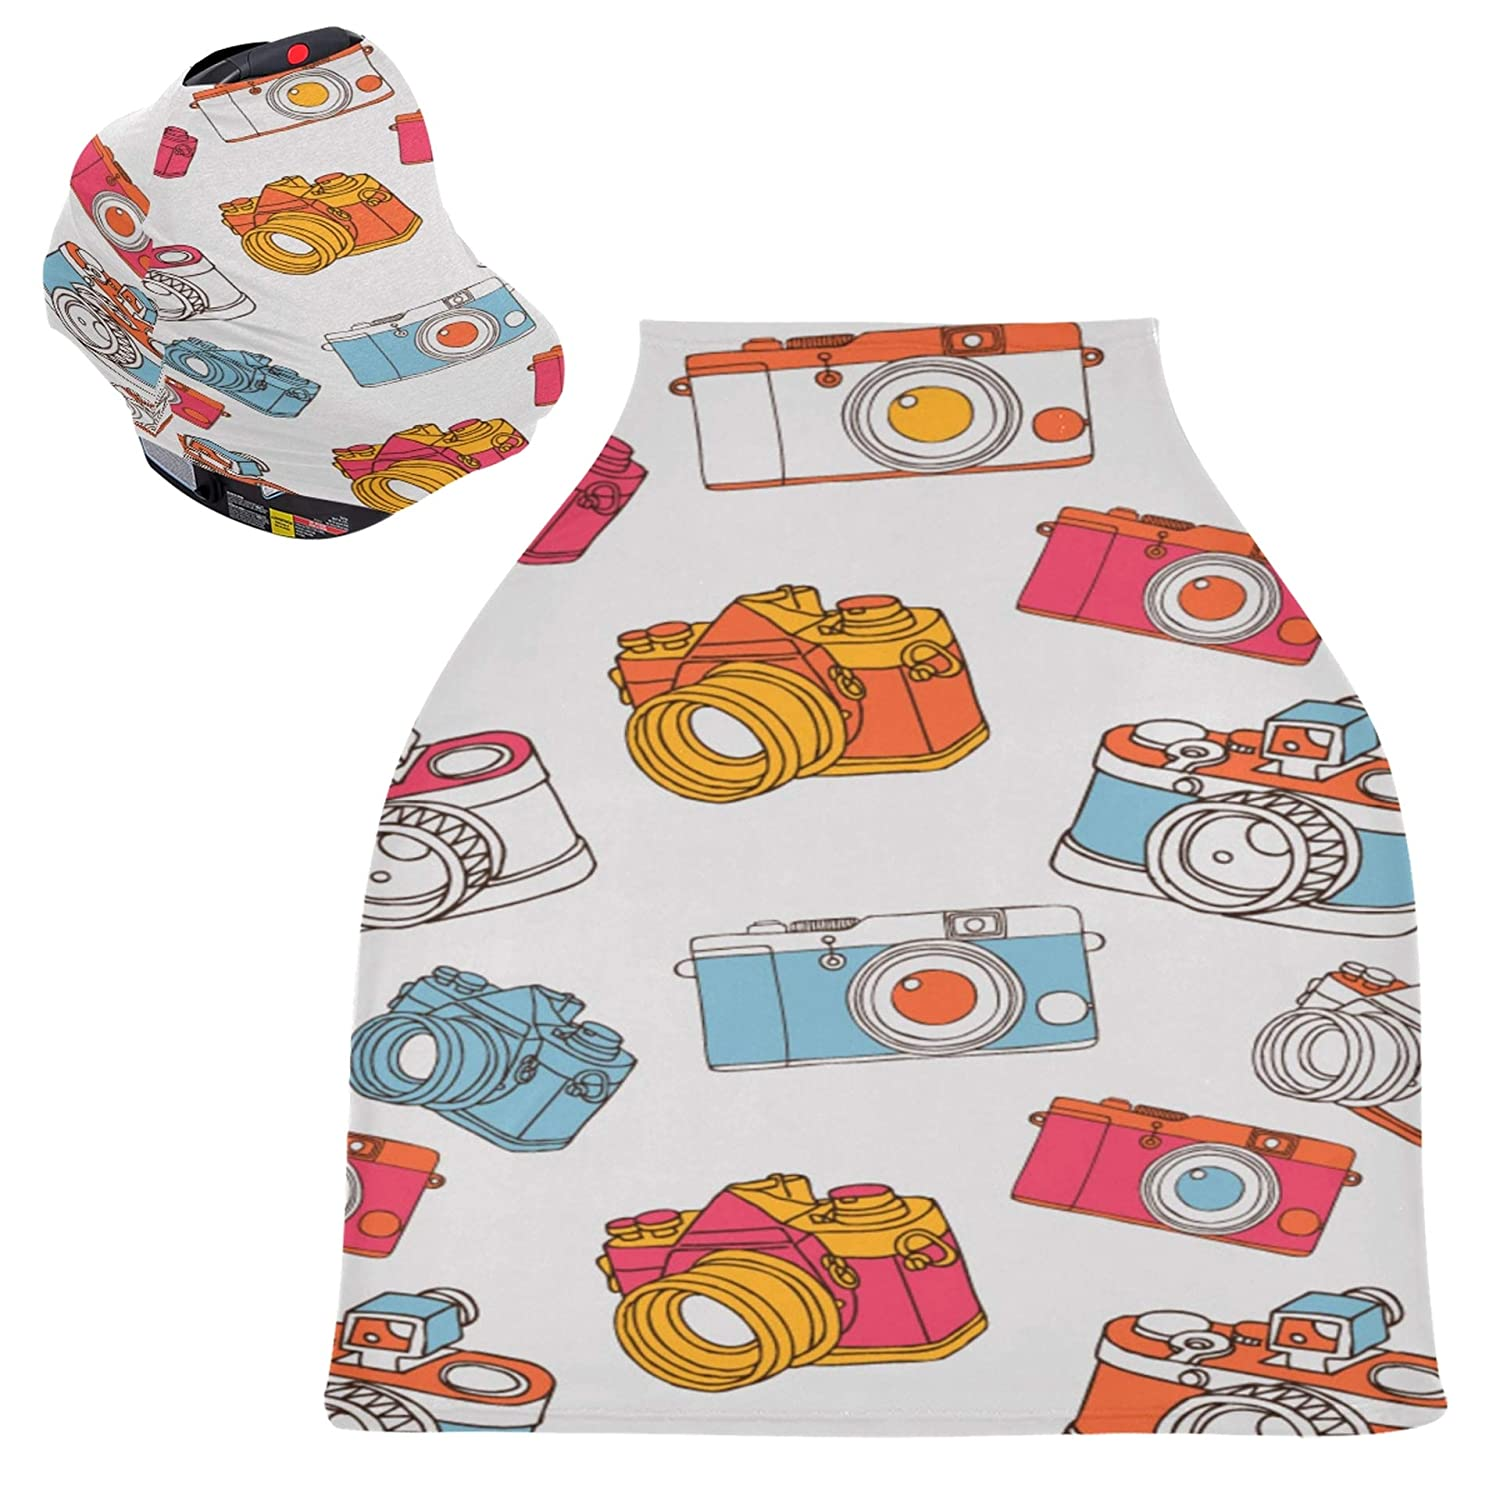 Ranking Quality inspection TOP4 Shopping Cart Covers for Baby Boy Kawaii Camera Colorful Small F